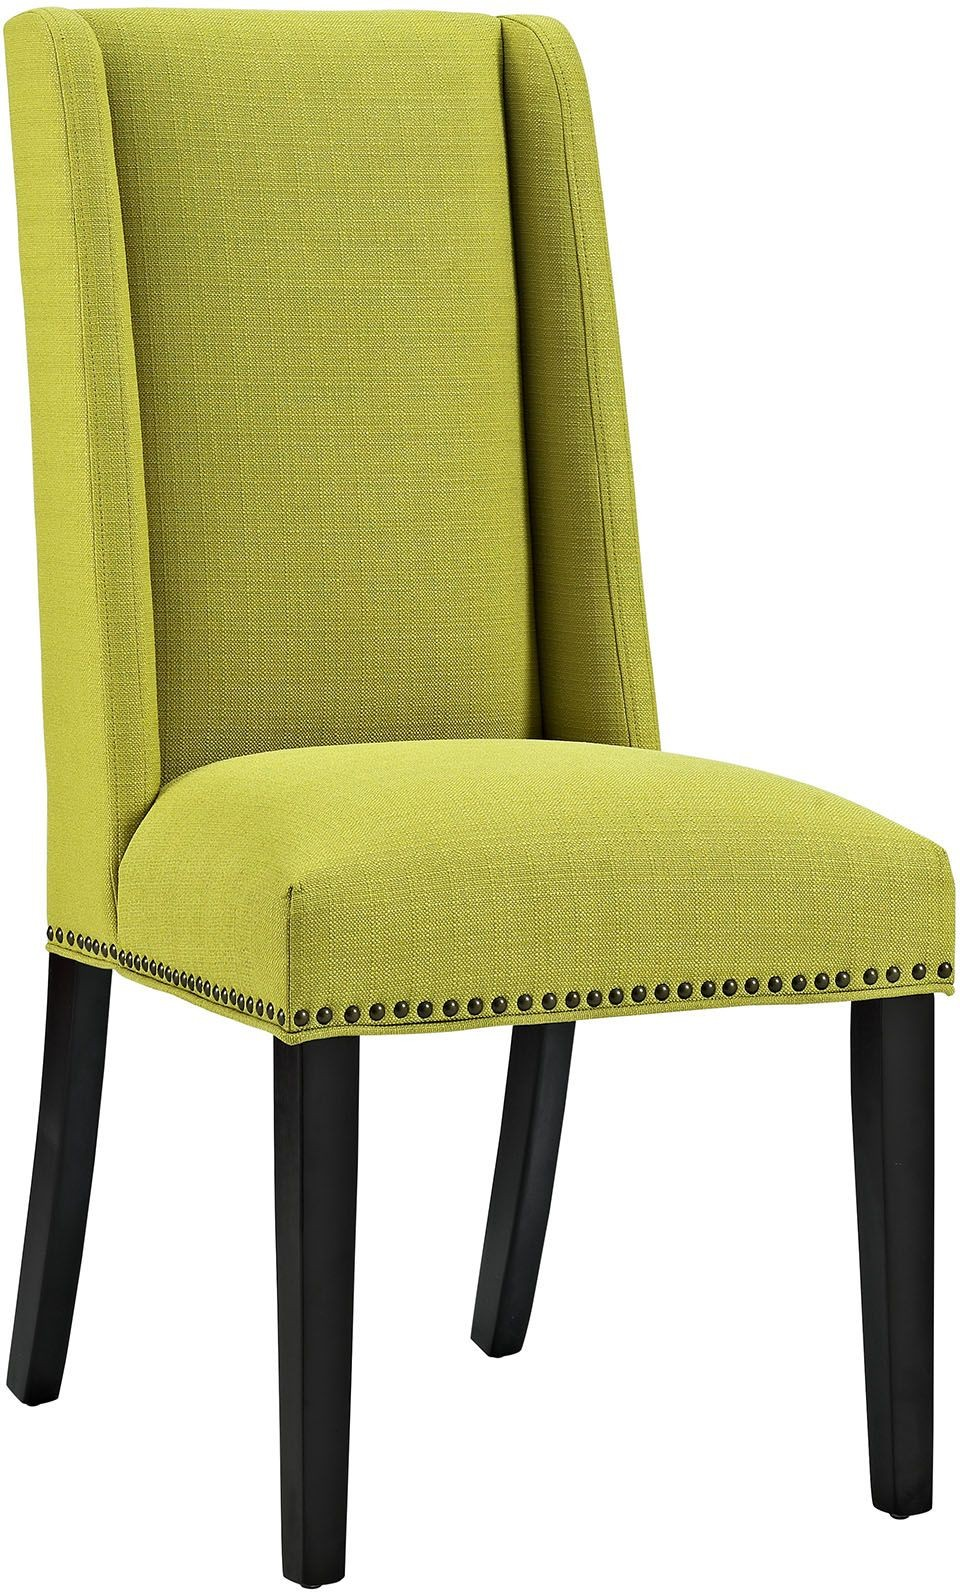 Baron Wheatgrass Upholstered Dining Chair From Renegade